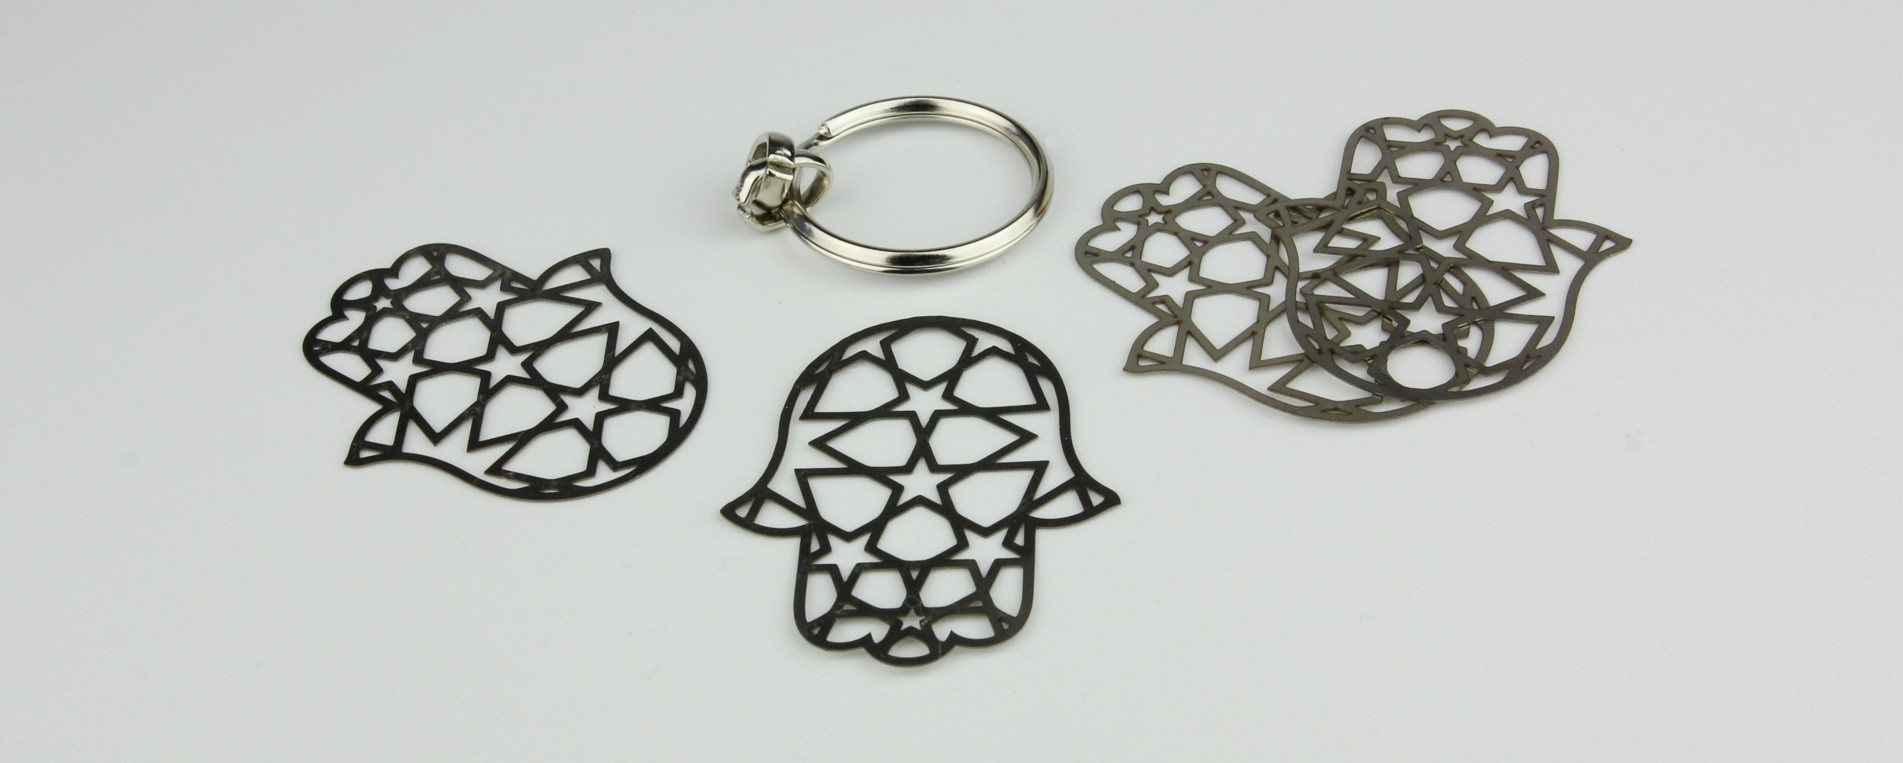 Laser cutting of stainless steel - artistic elements